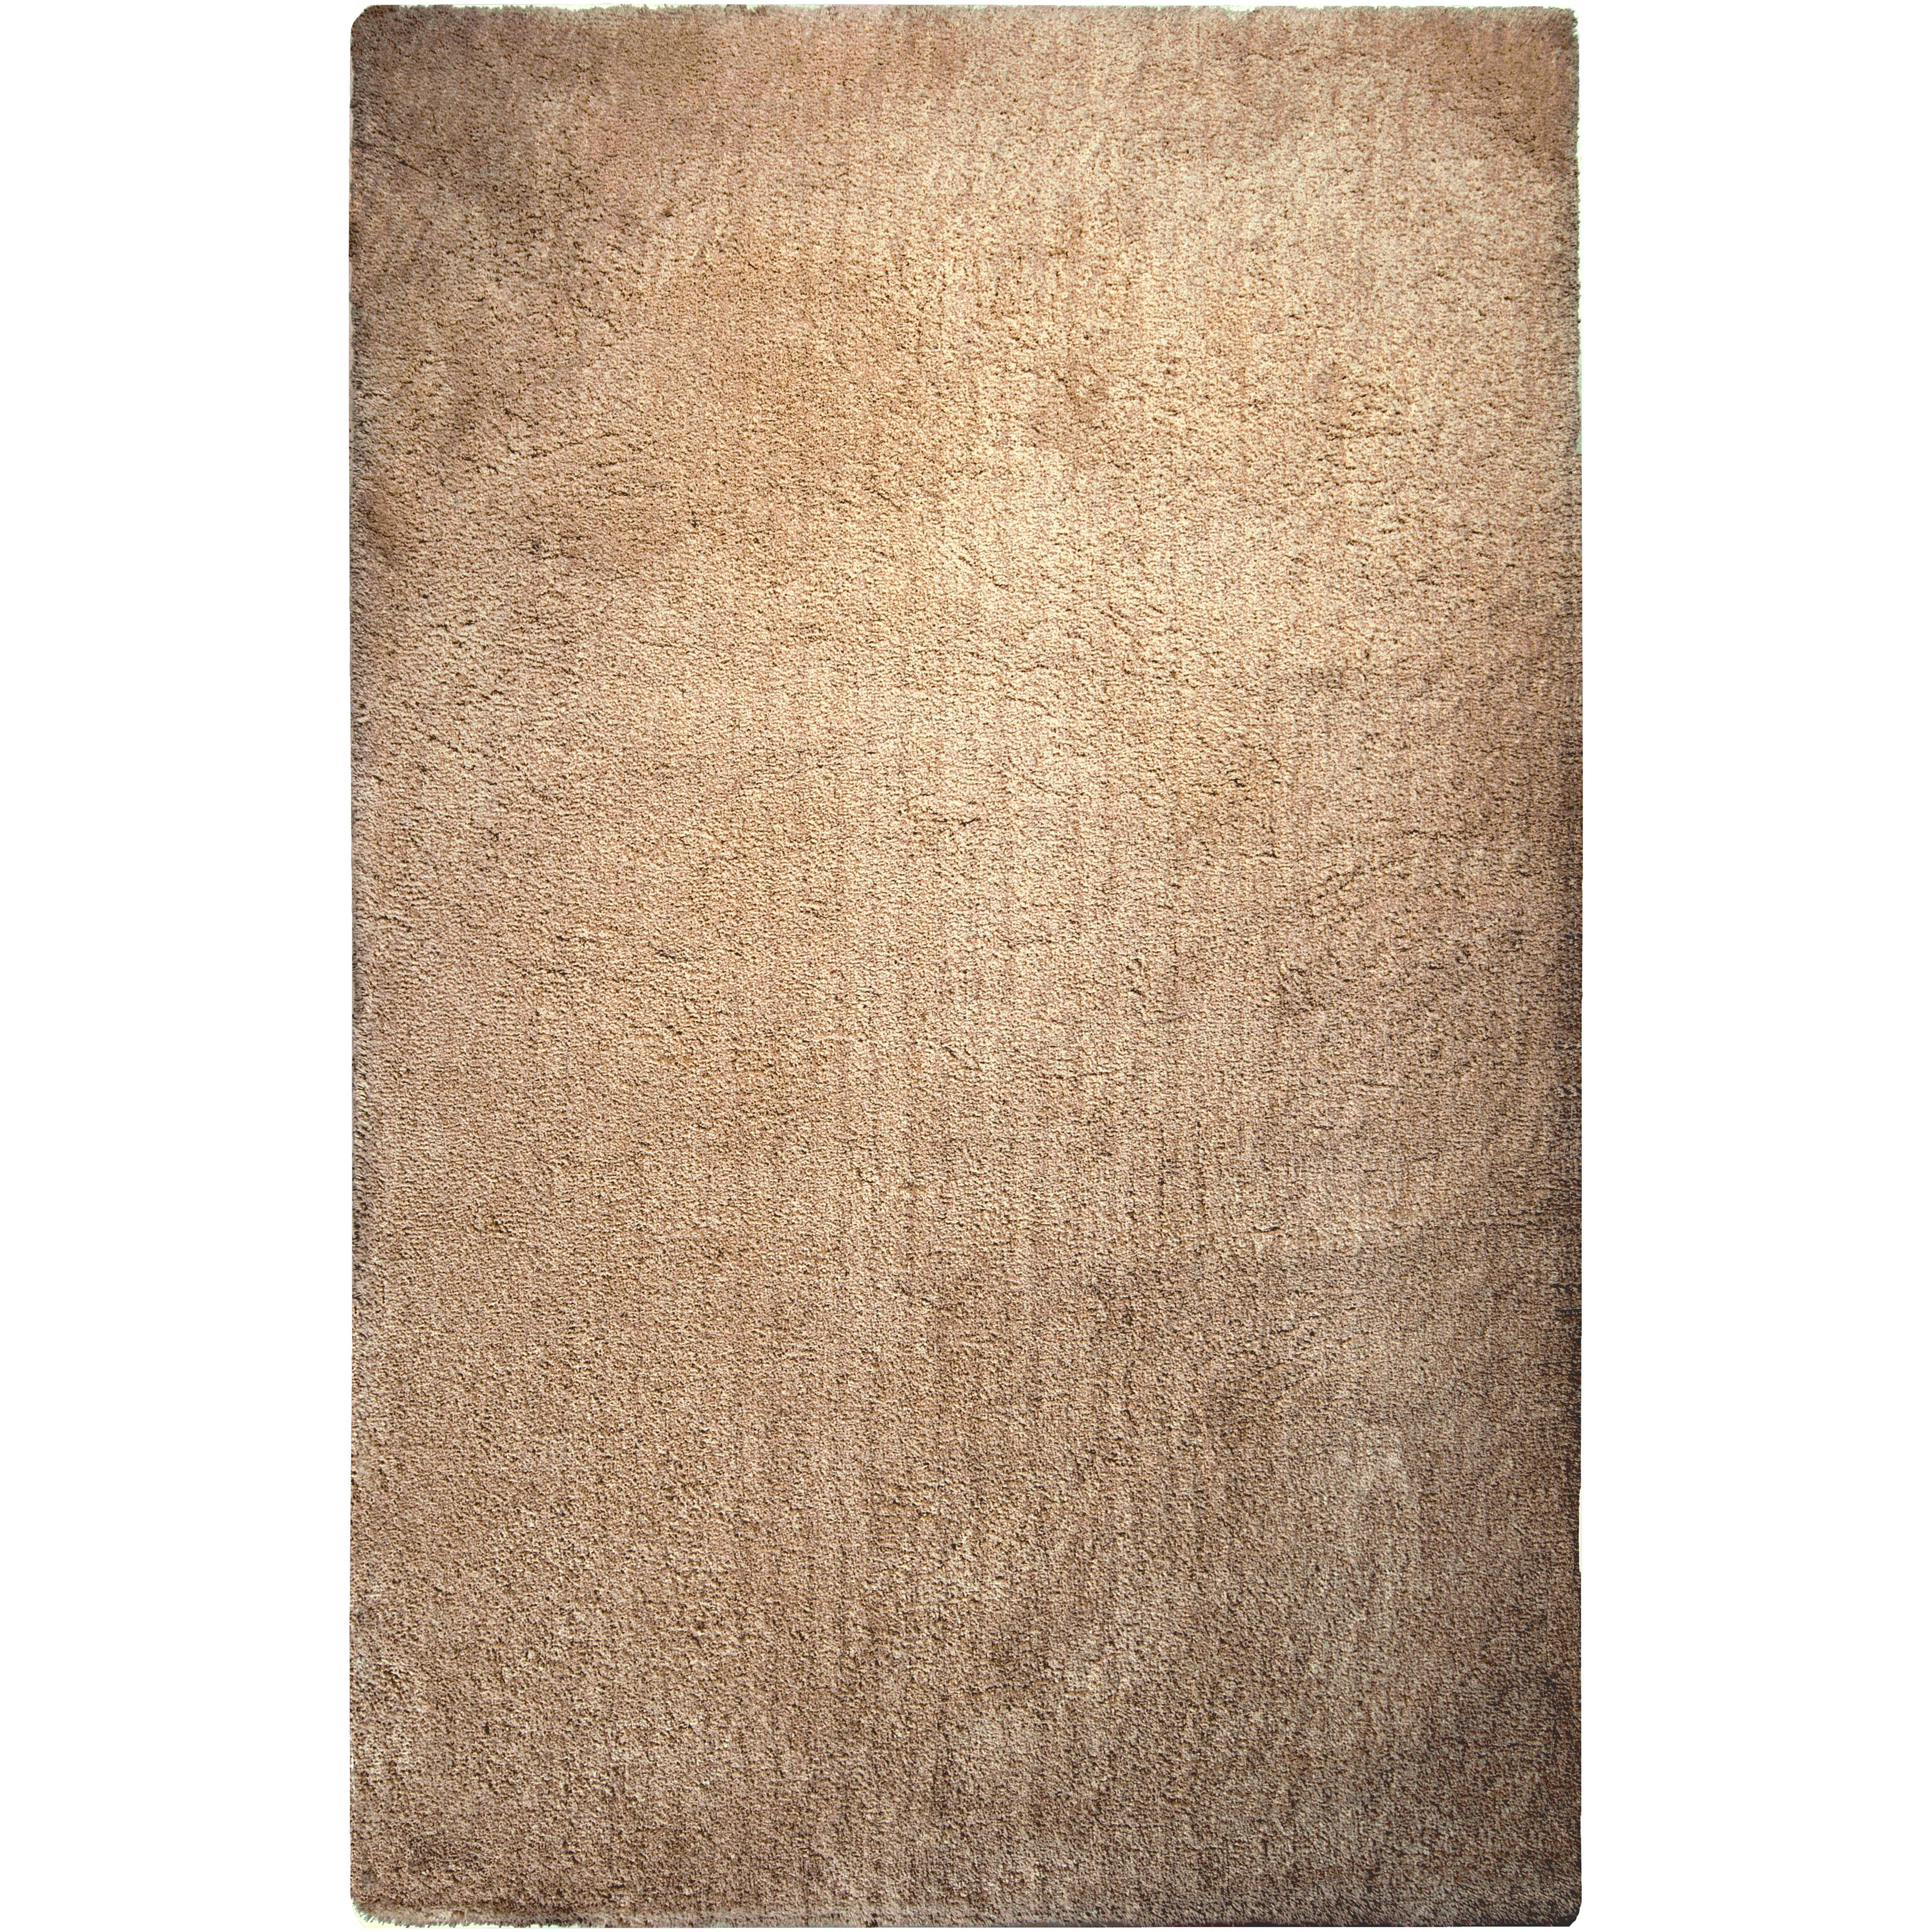 Surya Rugs Heaven 9' x 13' - Item Number: HEA8006-913